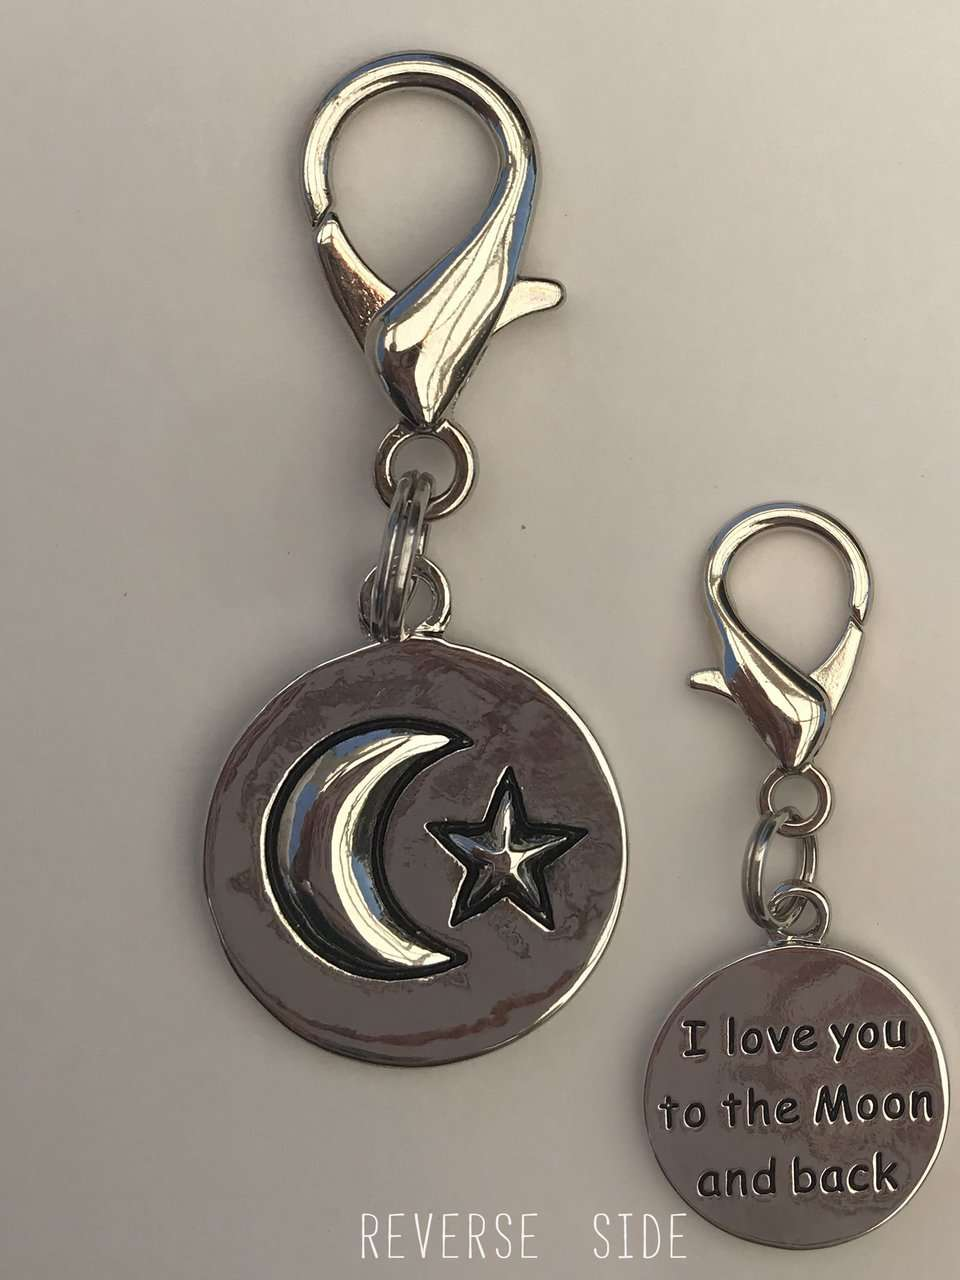 Diva Dog - I Love You to the Moon and Back Dog Collar Charm